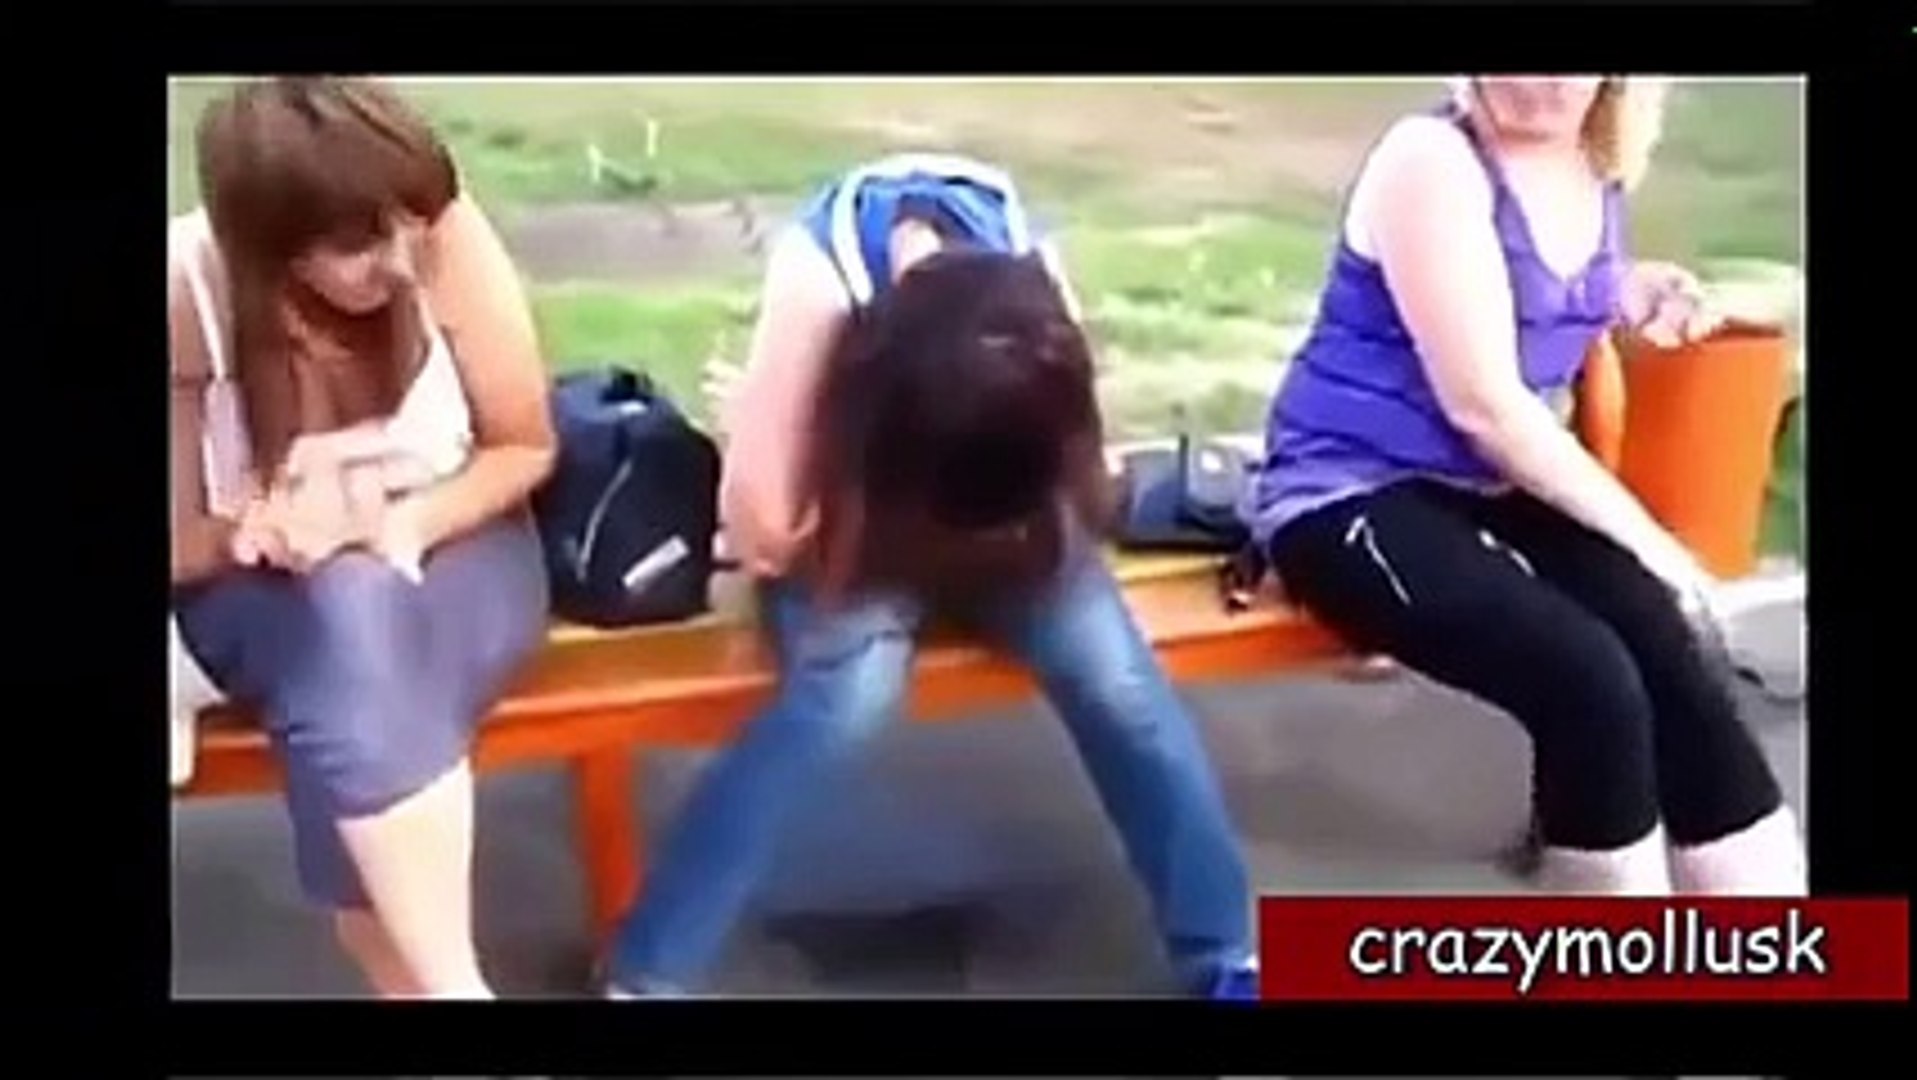 Drunk and Sexy Girls Bloopers  Funny Sexy Moments On Tv _ Tv Bloopers and Outtakes